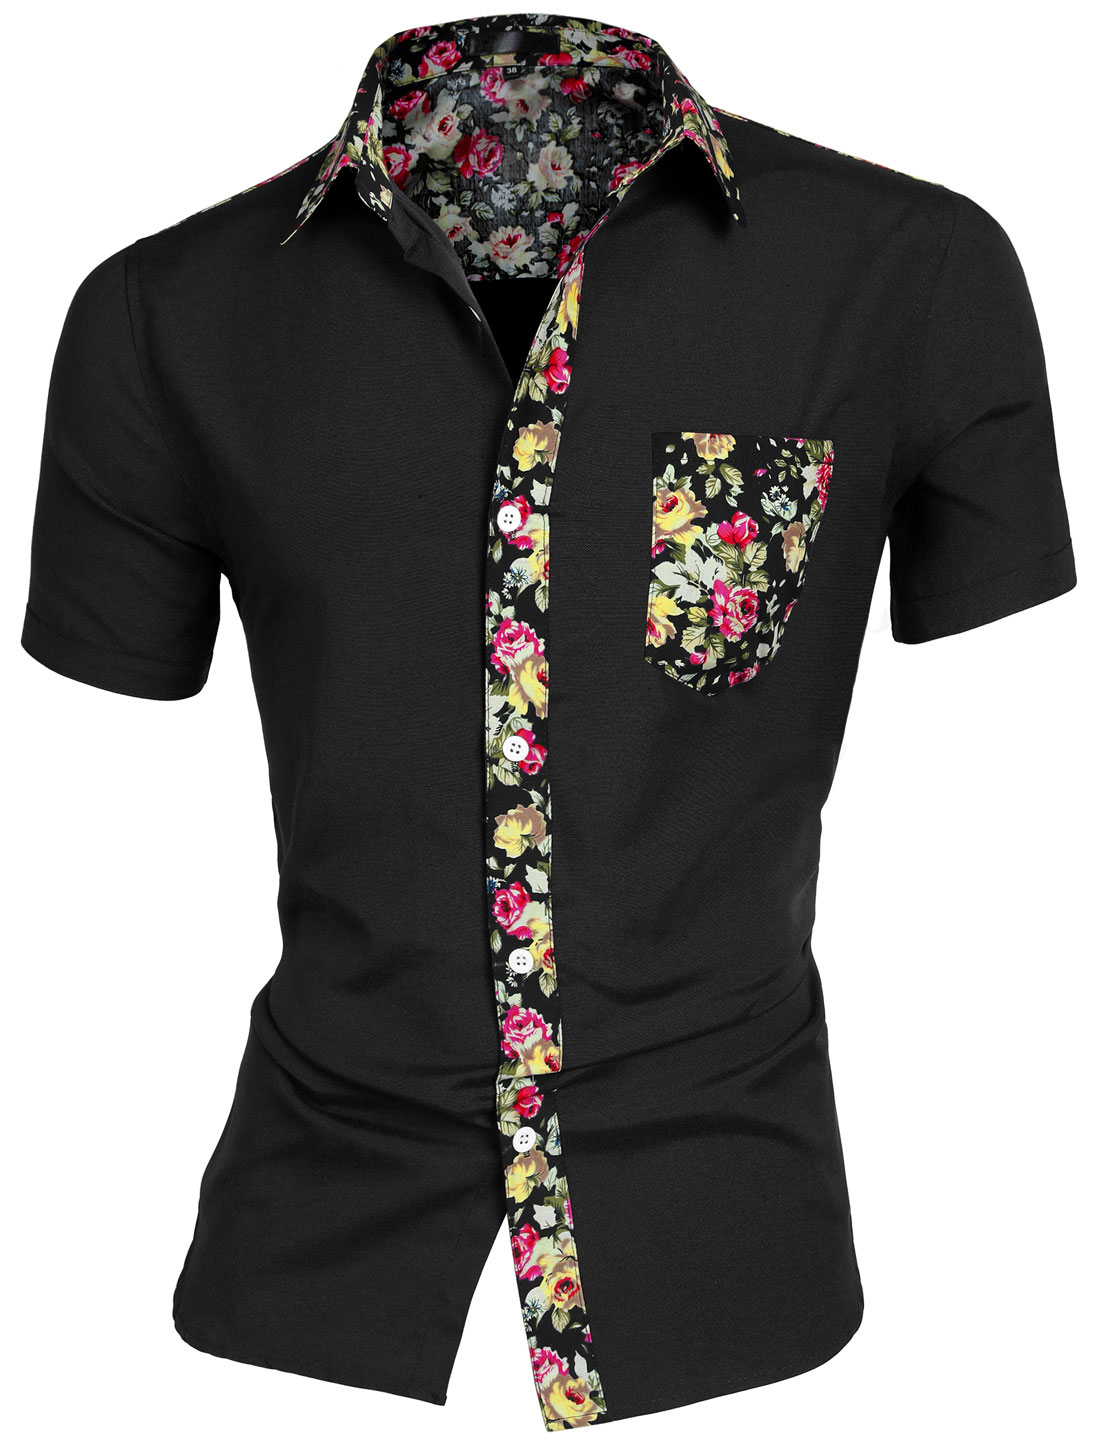 Men Short Sleeve Floral Print Single Breasted Summer Shirt Black M